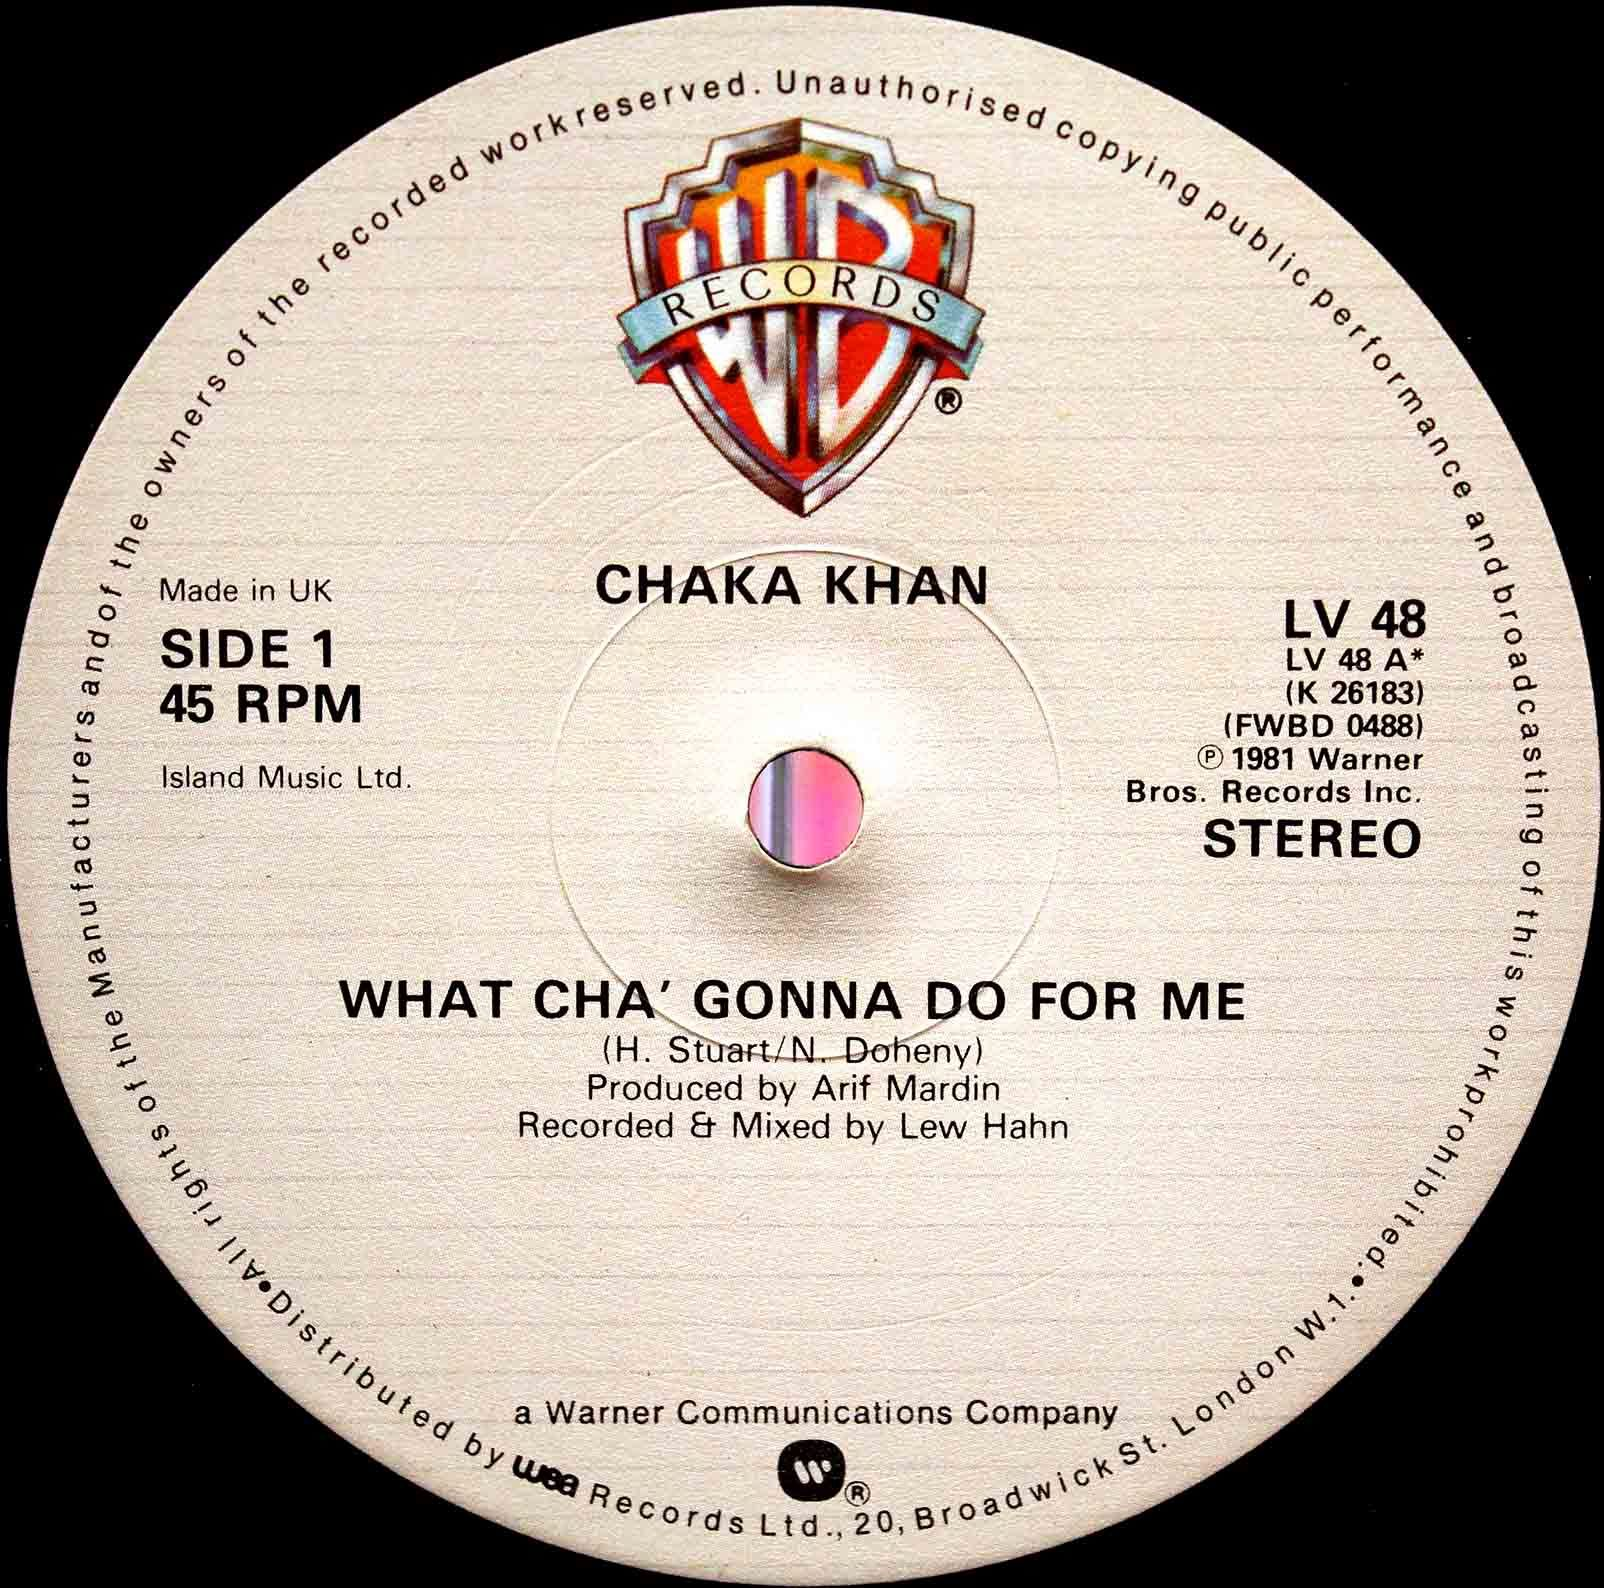 Chaka Khan - What Cha Gonna Do For Me 03